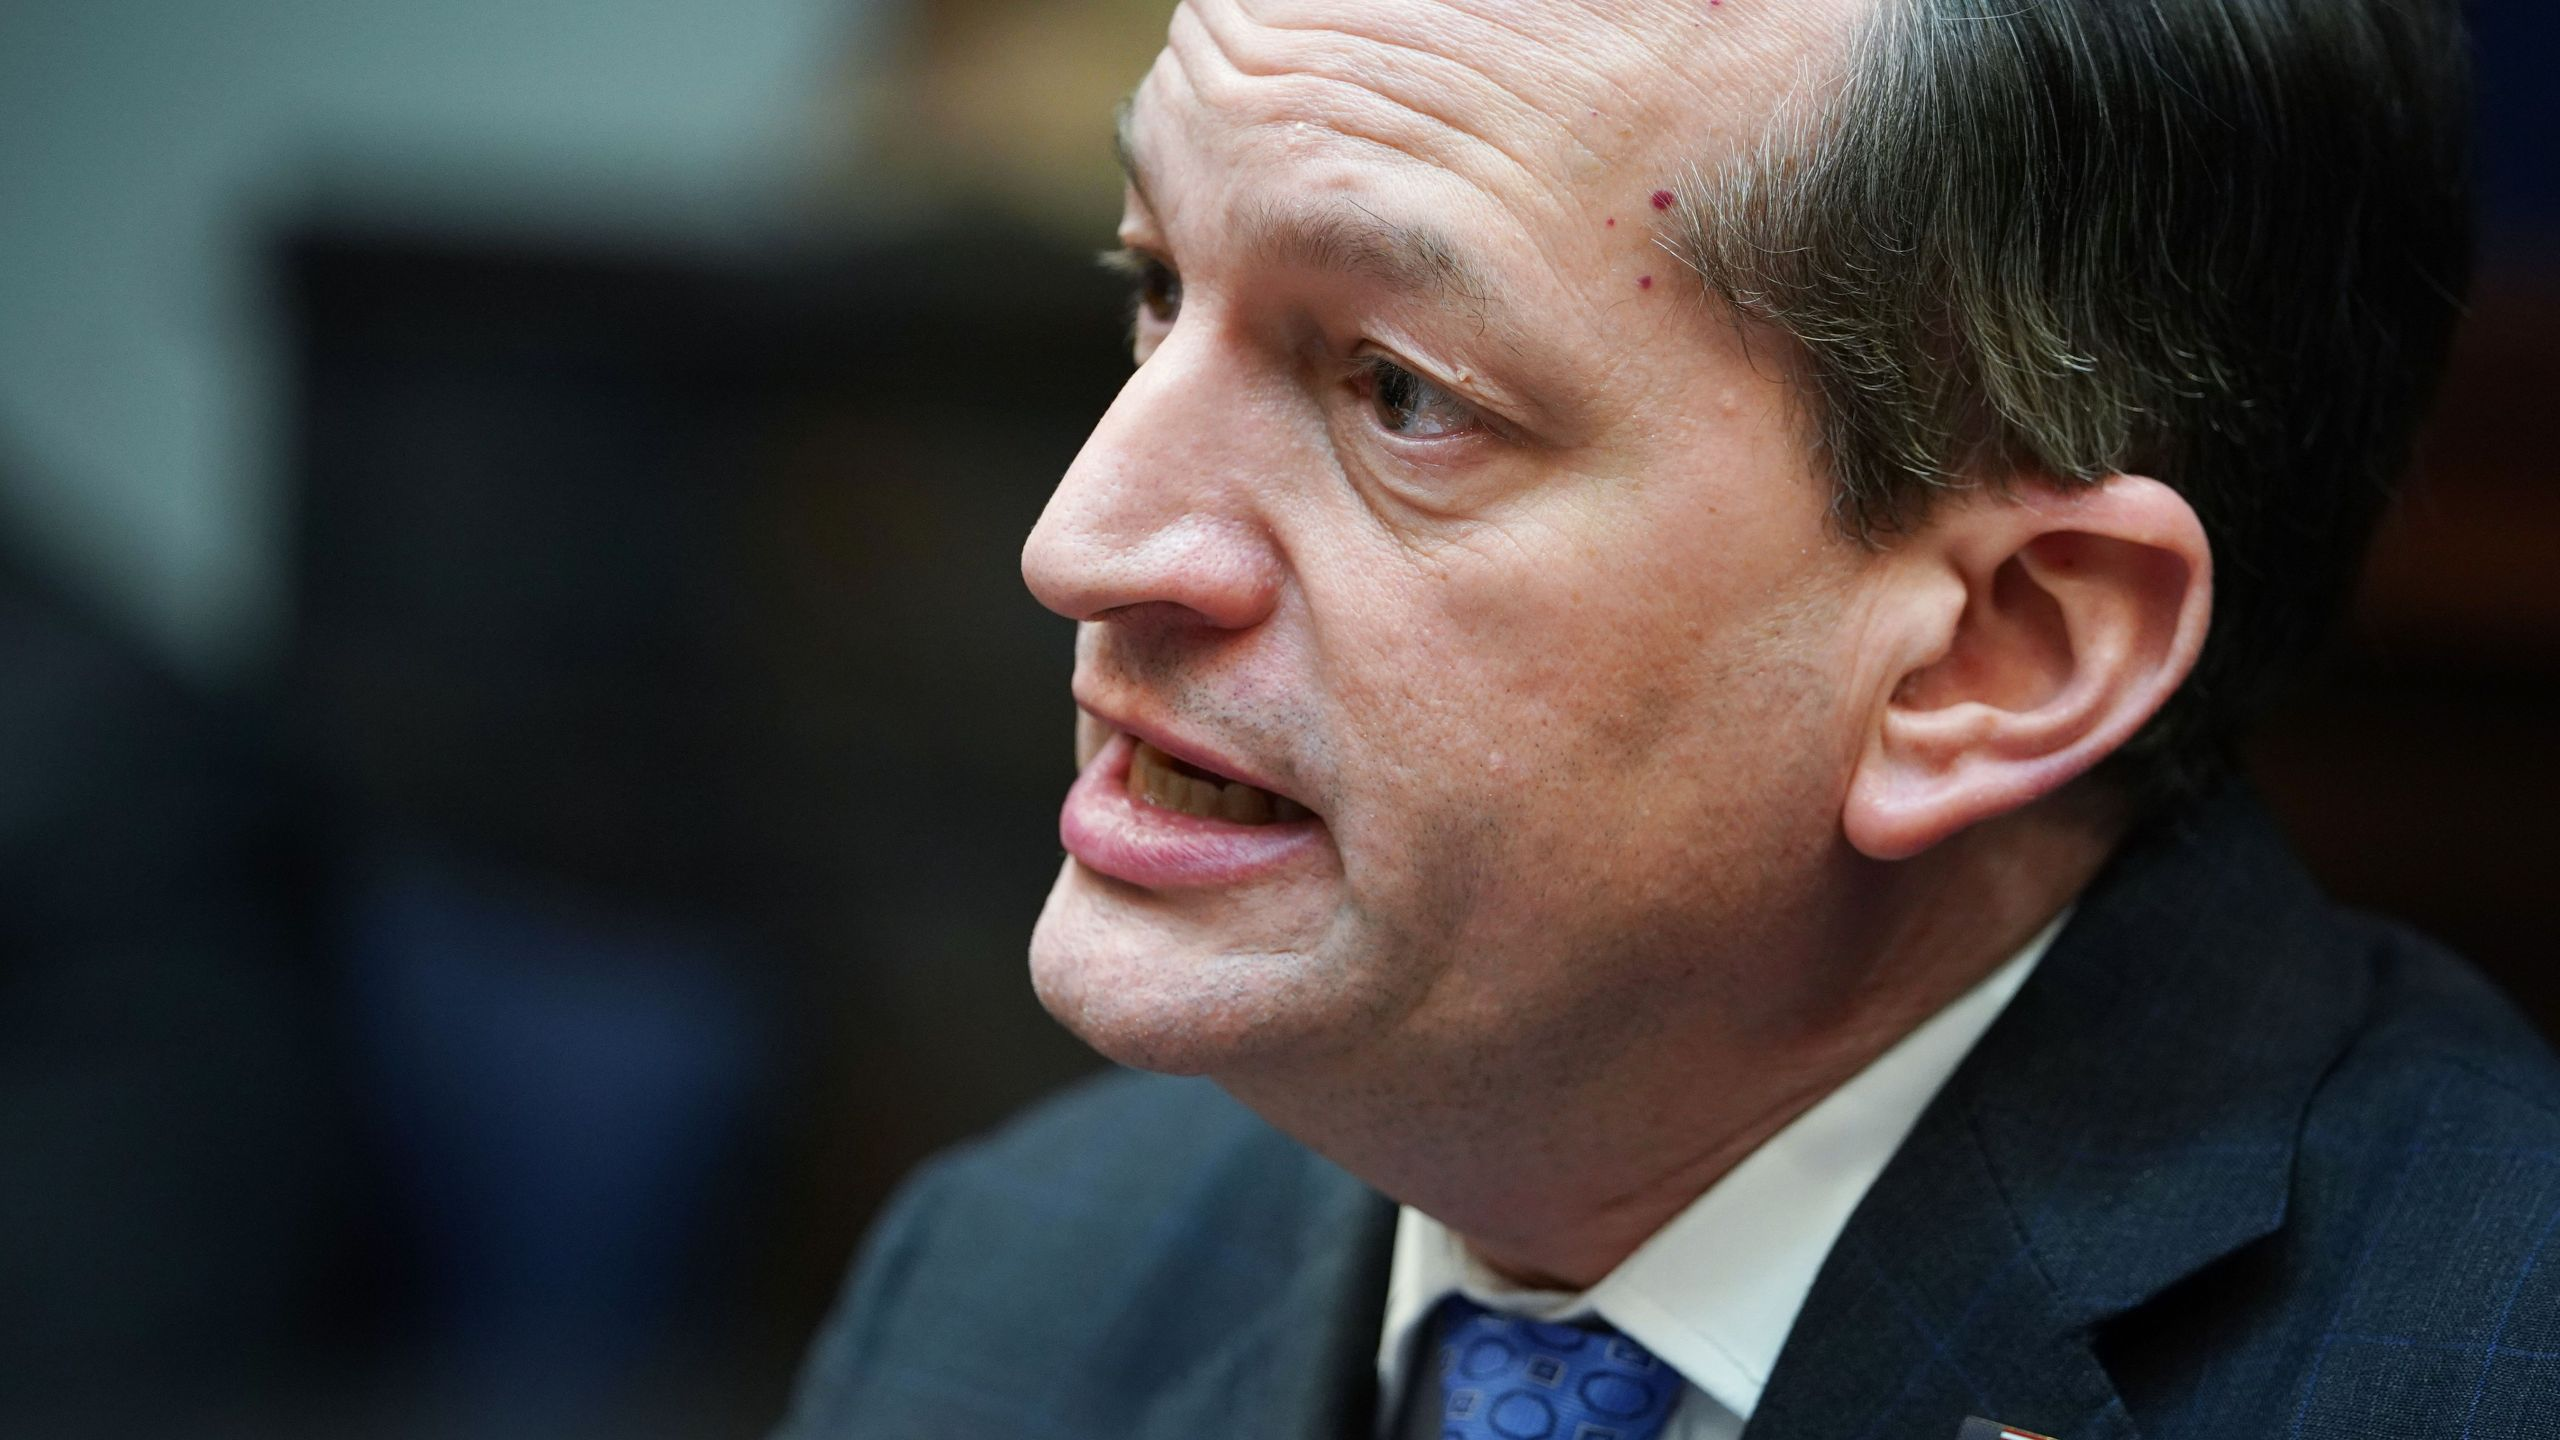 Labor Secretary Alex Acosta speaks during a roundtable discussion on healthcare cost in the Roosevelt Room of the White House on Jan. 23, 2019. (Credit: Mandel Ngan / AFP / Getty Images)